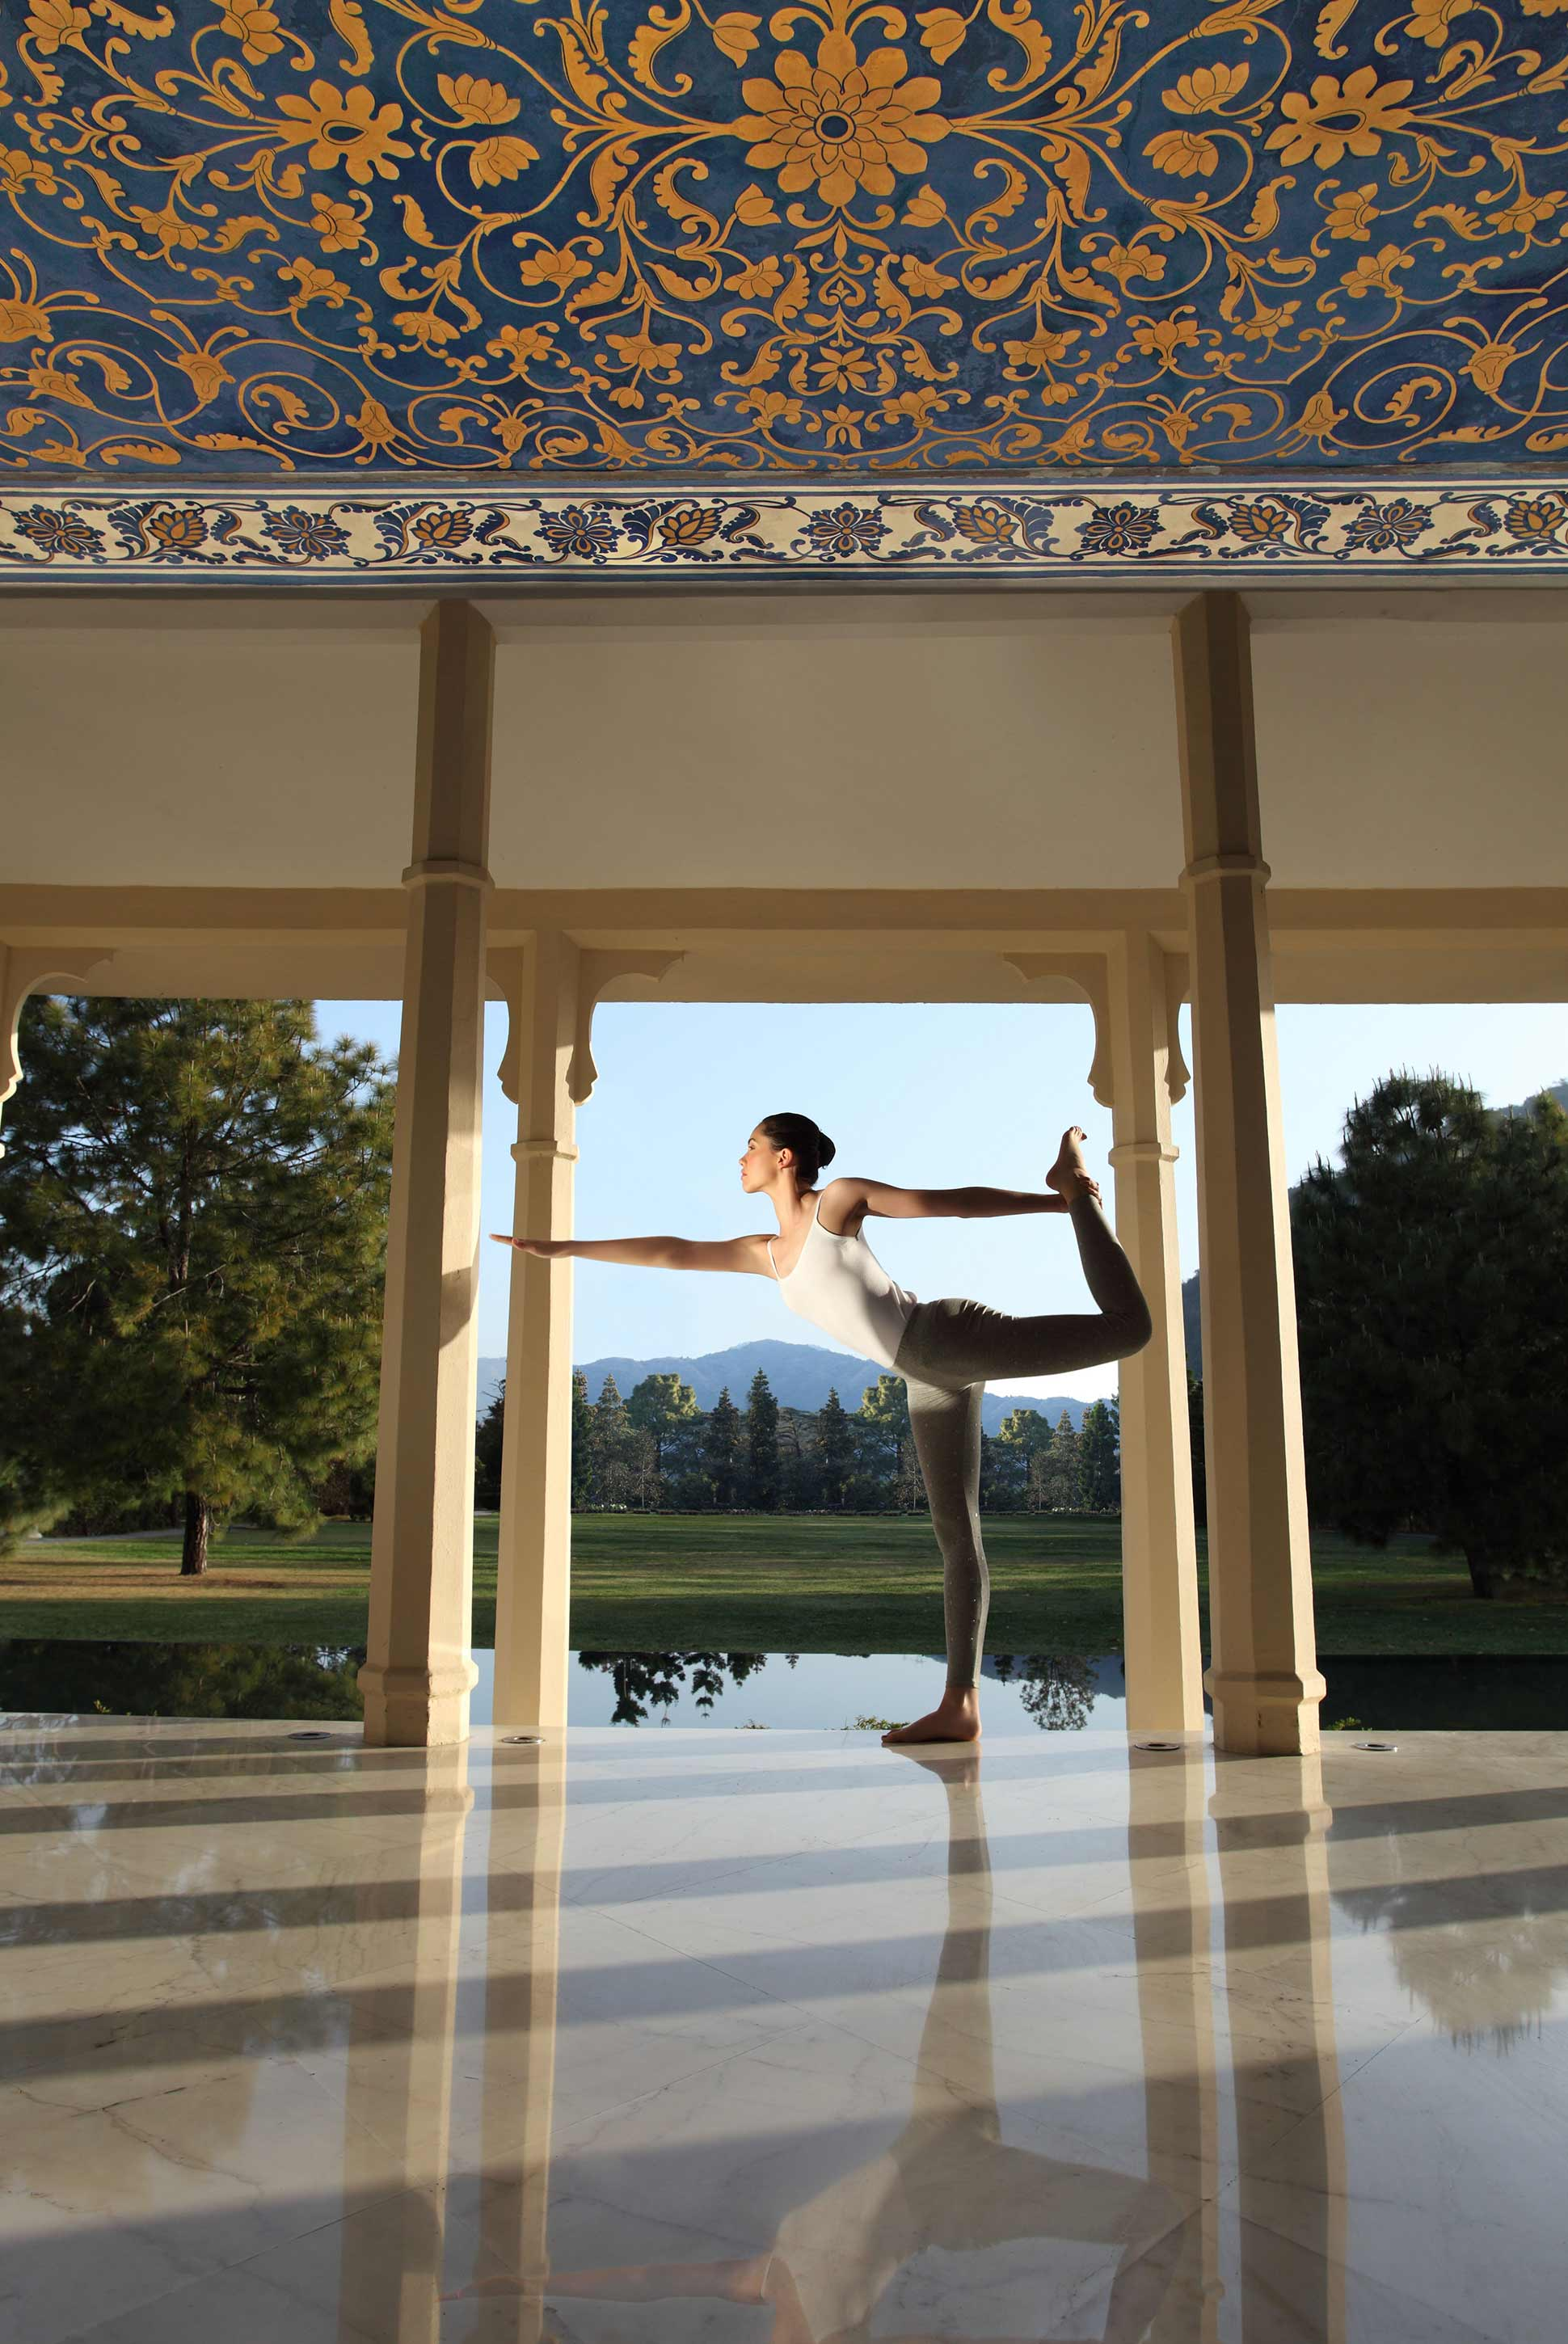 hotel yoga wellness Ananda in the Himalayas 5 stars Uttarakhand India